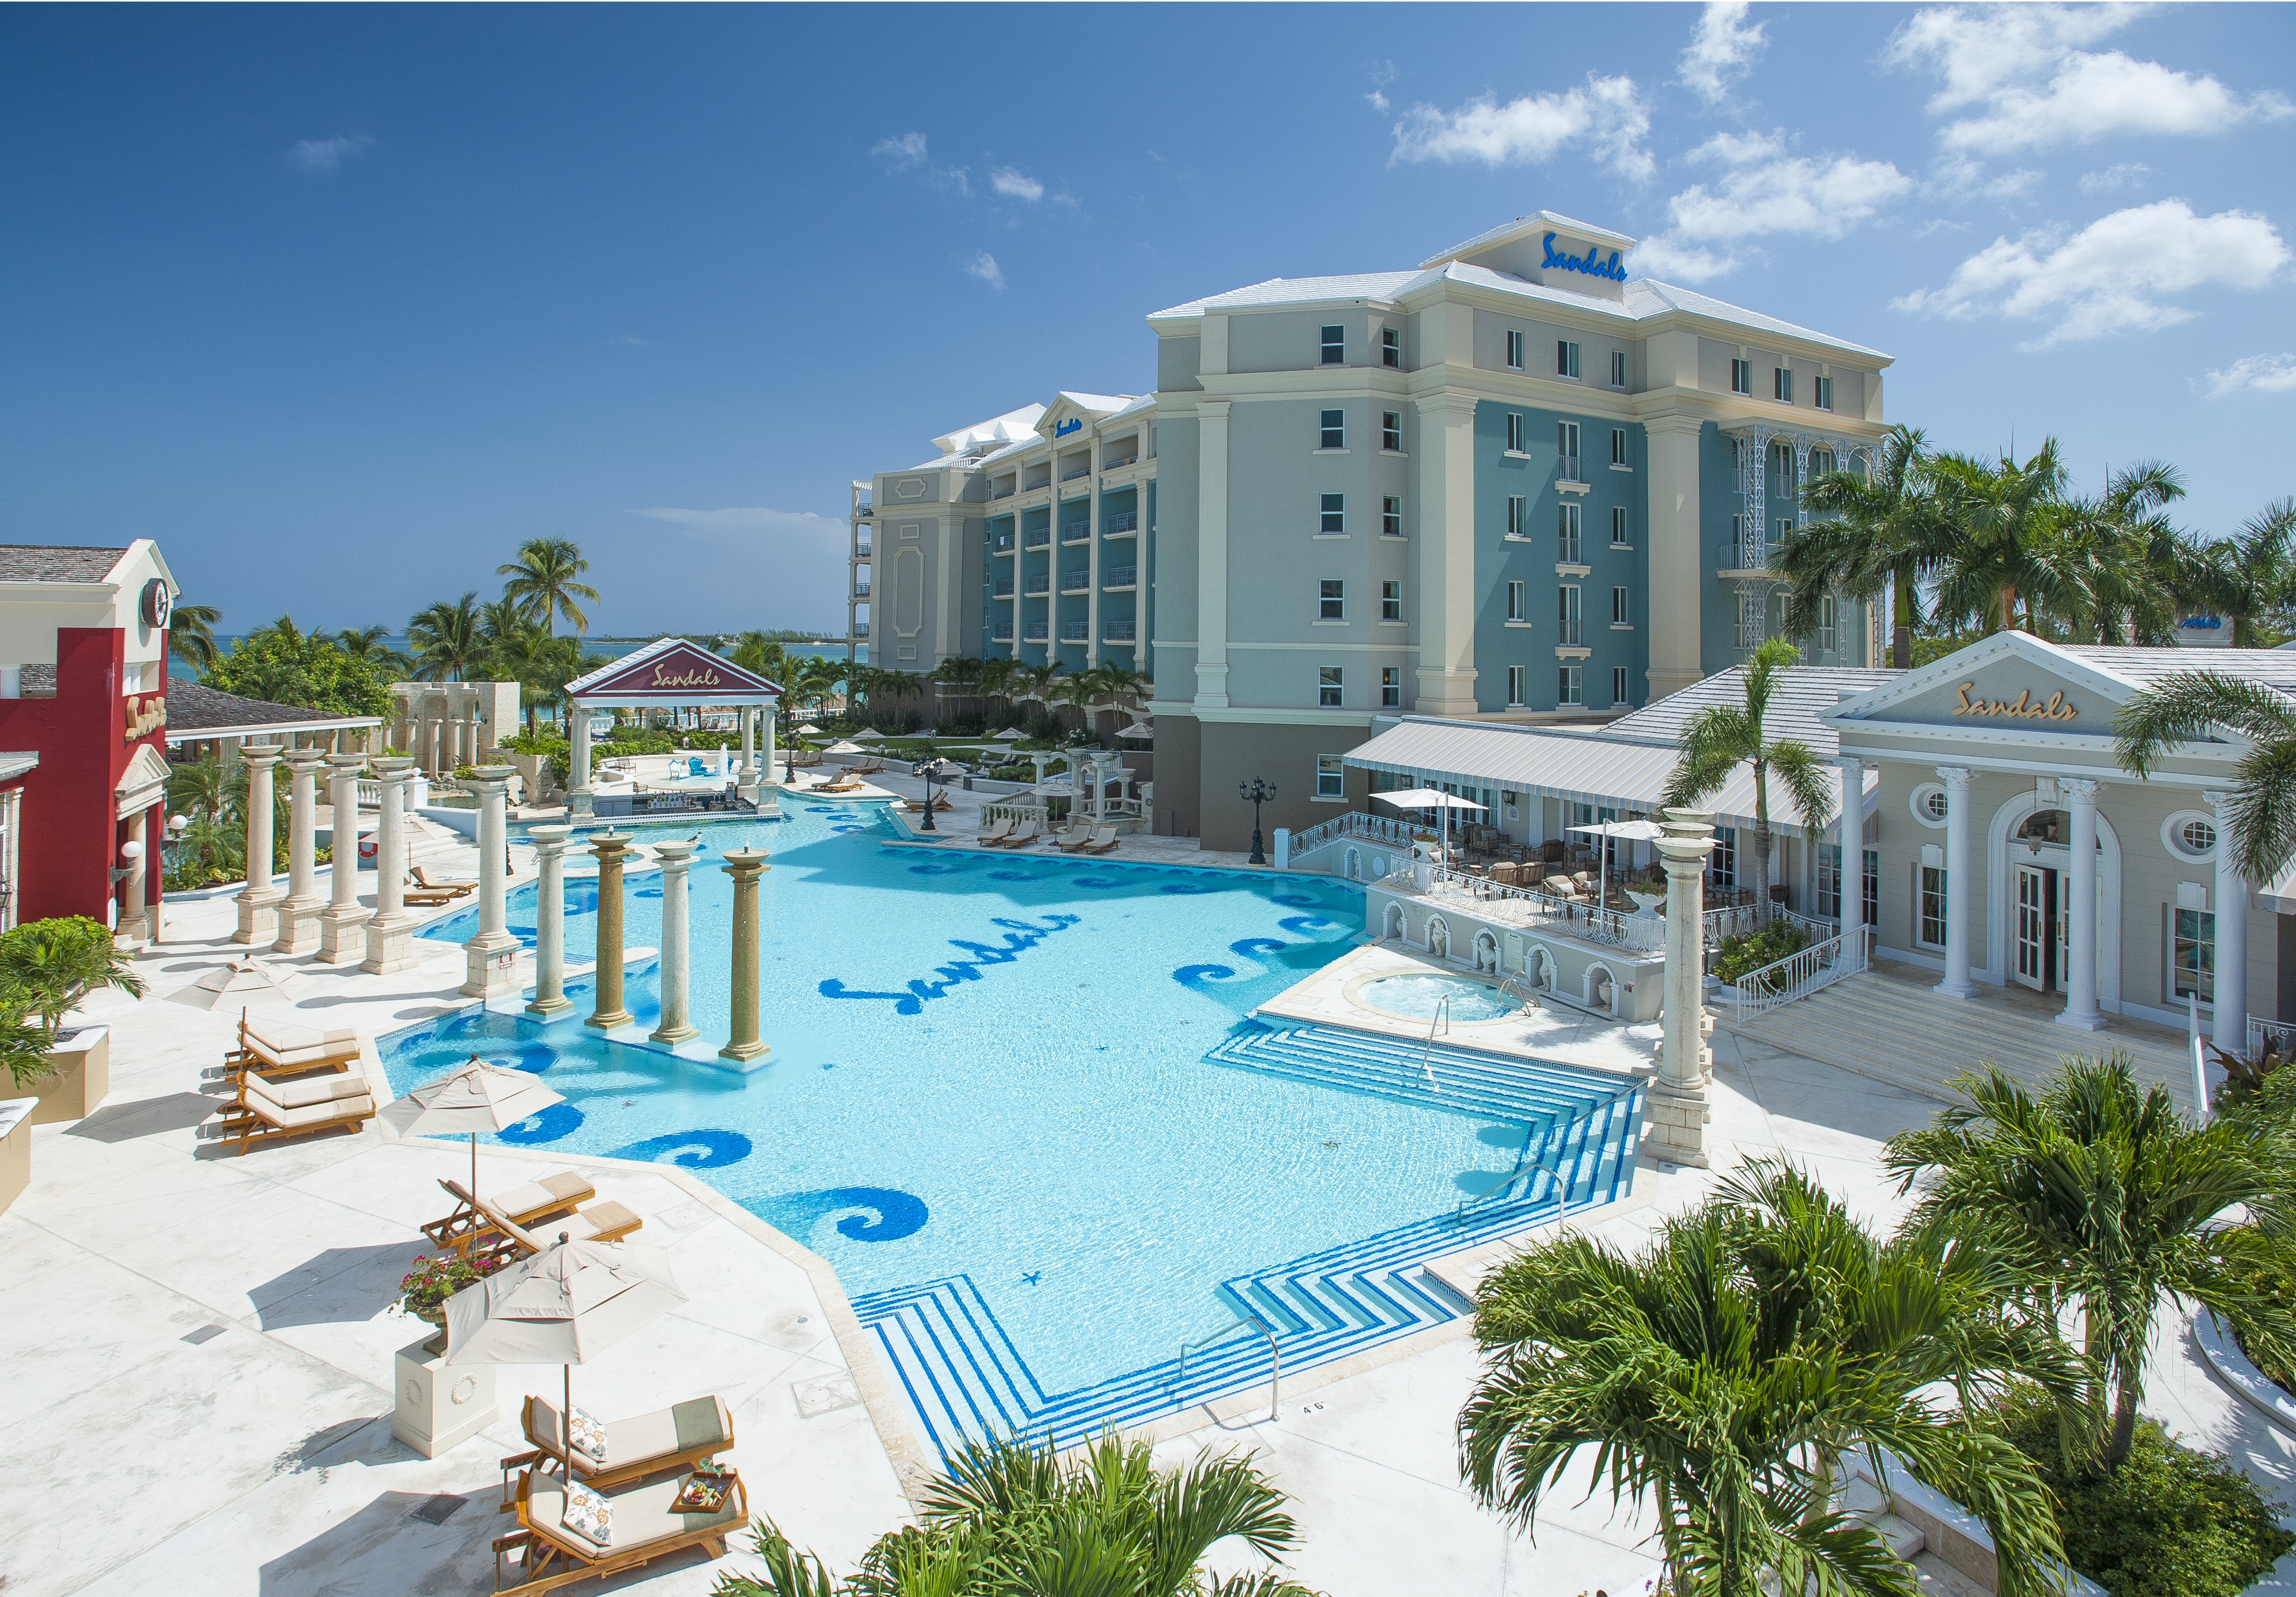 Regal Meet Exotic Sandals Royal Bahamian Spa Resort